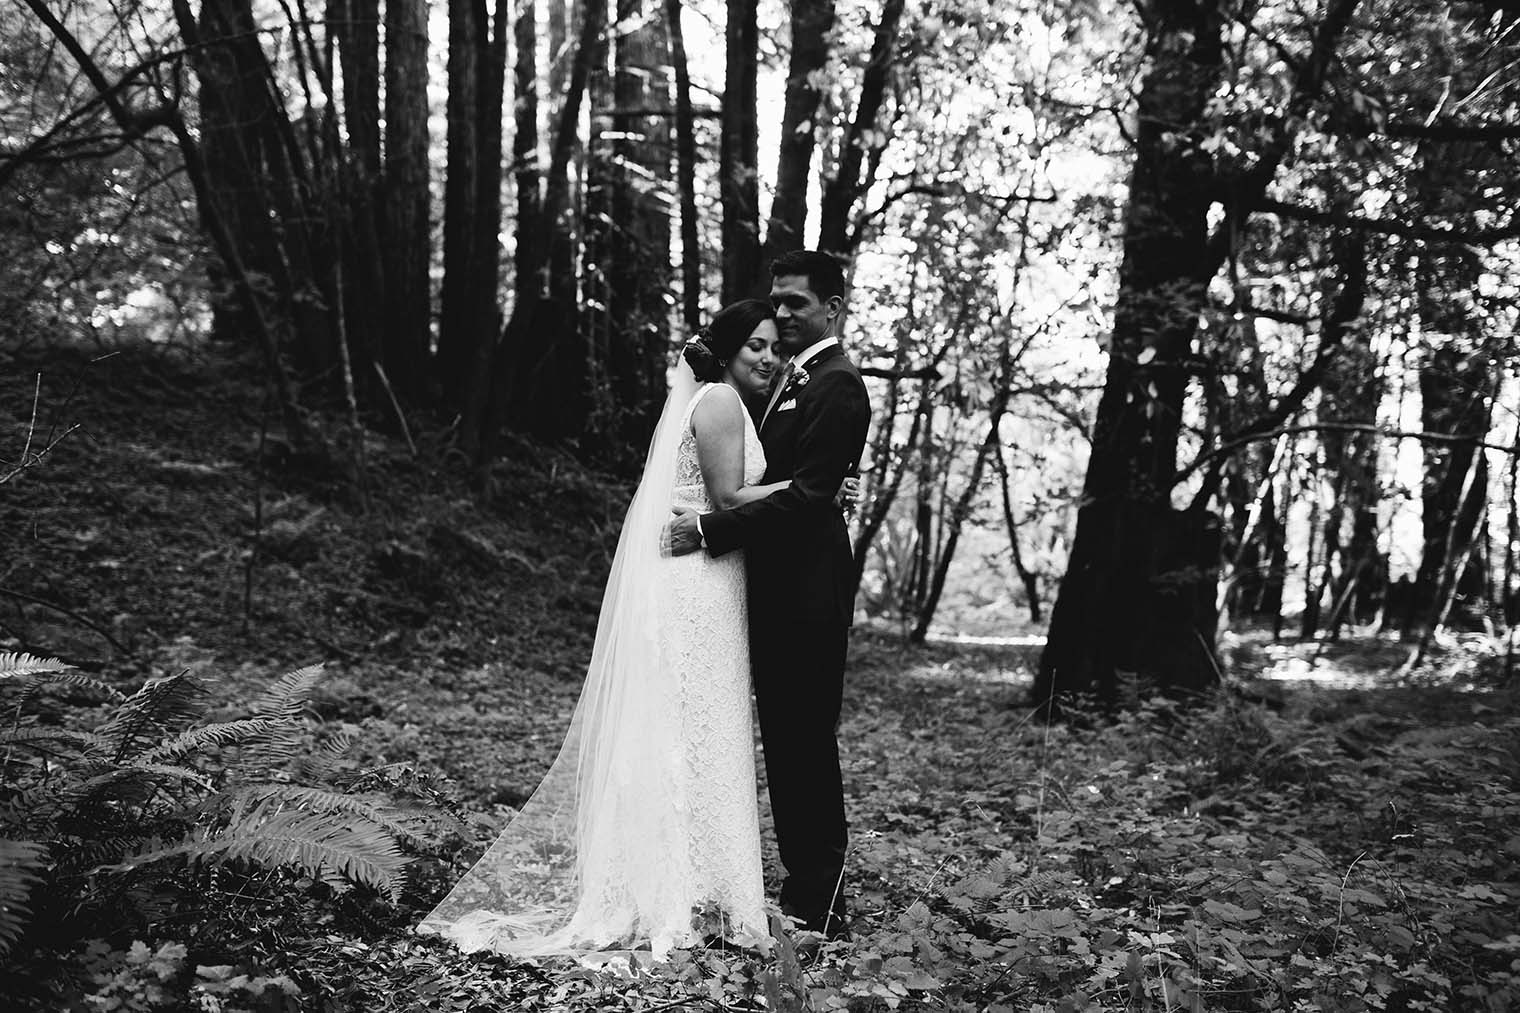 wedding portraits in the forest near Guerneville, California